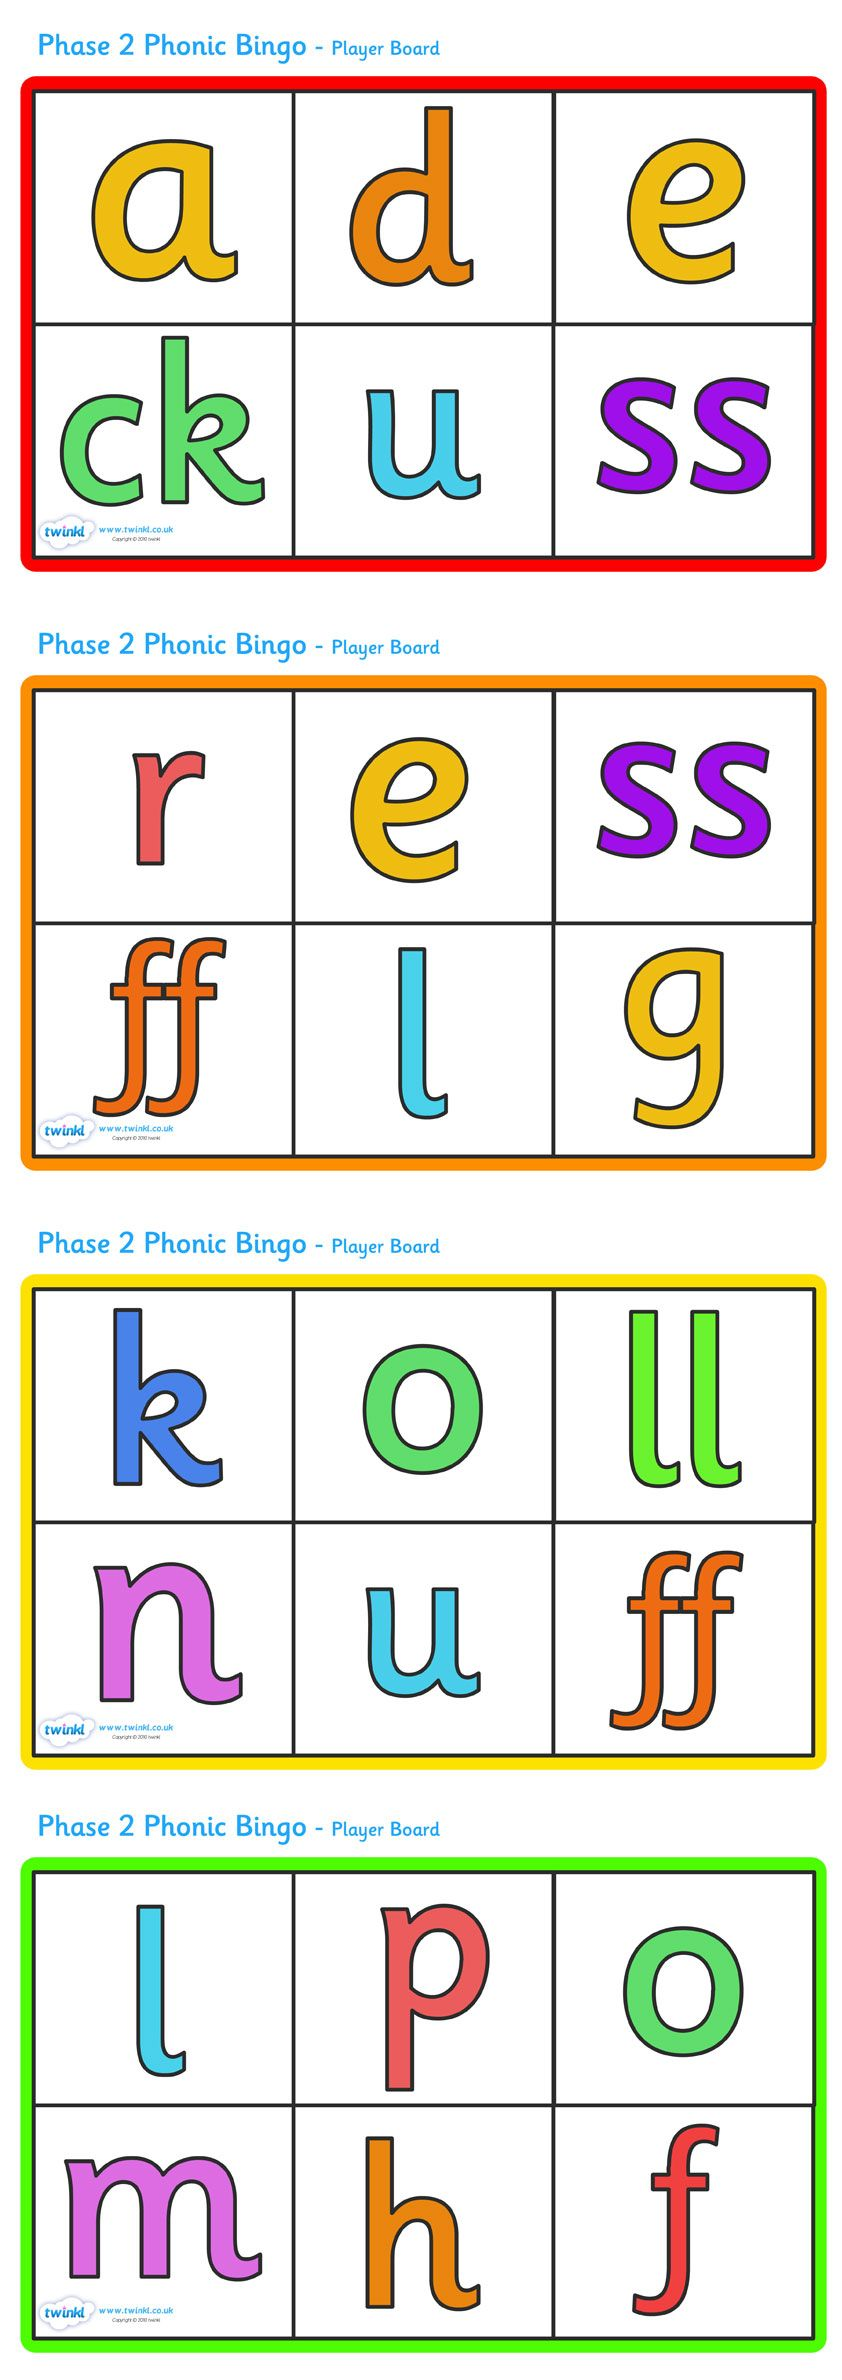 Phase 2 Phonic Bingo And Lotto Pop Over To Our Site At Www Twinkl Co Uk And Check Out Our Lovely Letters And Sounds Phase 2 Phonics Phonics Reading Phonics Phonics reading activities phase 2